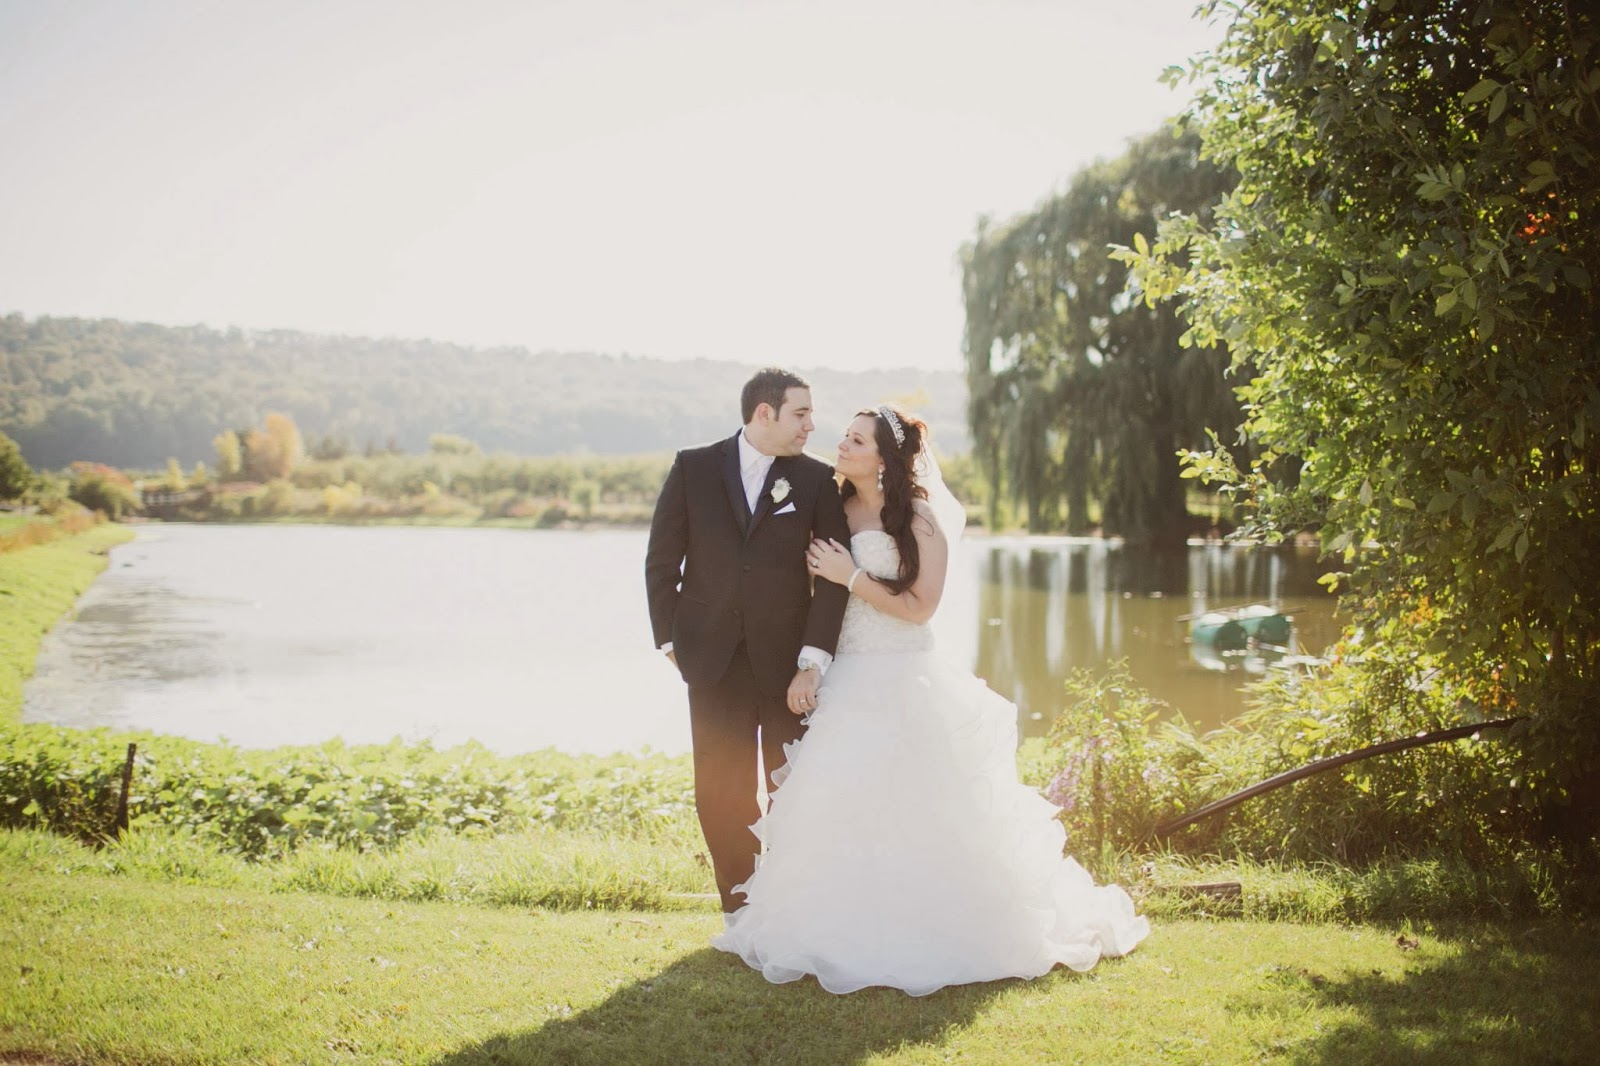 images by  Elizabeth In Love Photography